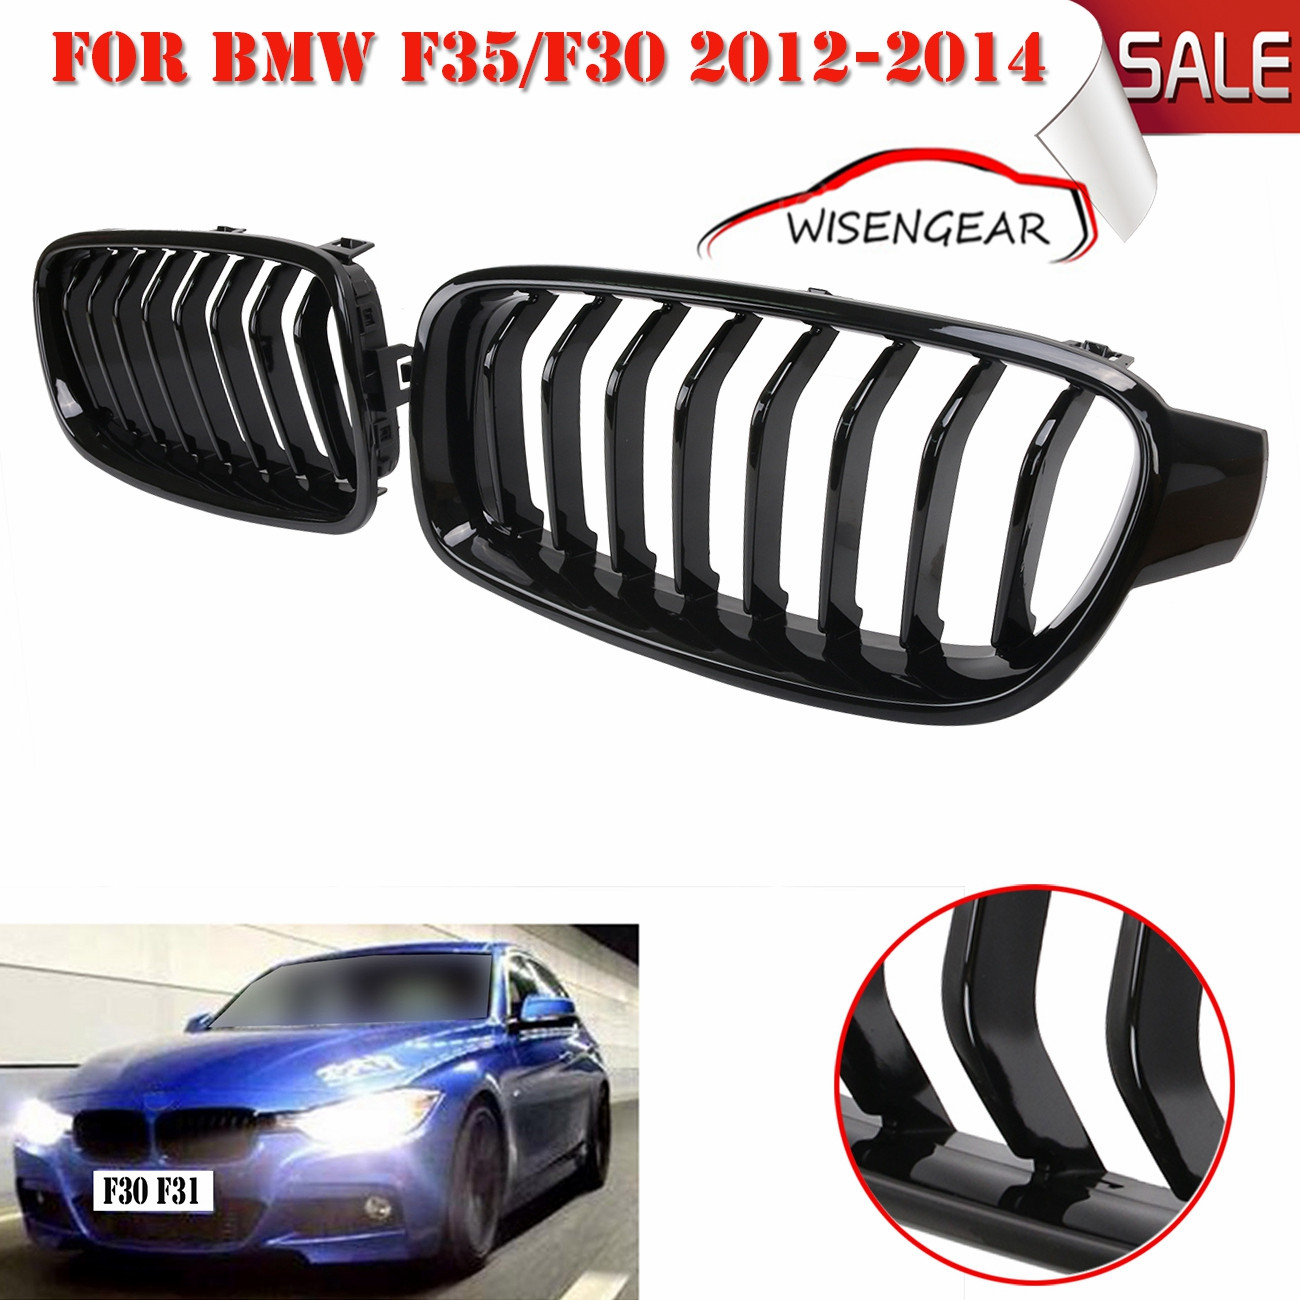 High quality glossy black front kidney grille bumper grill for bmw f30 f31 f35 320i 328i